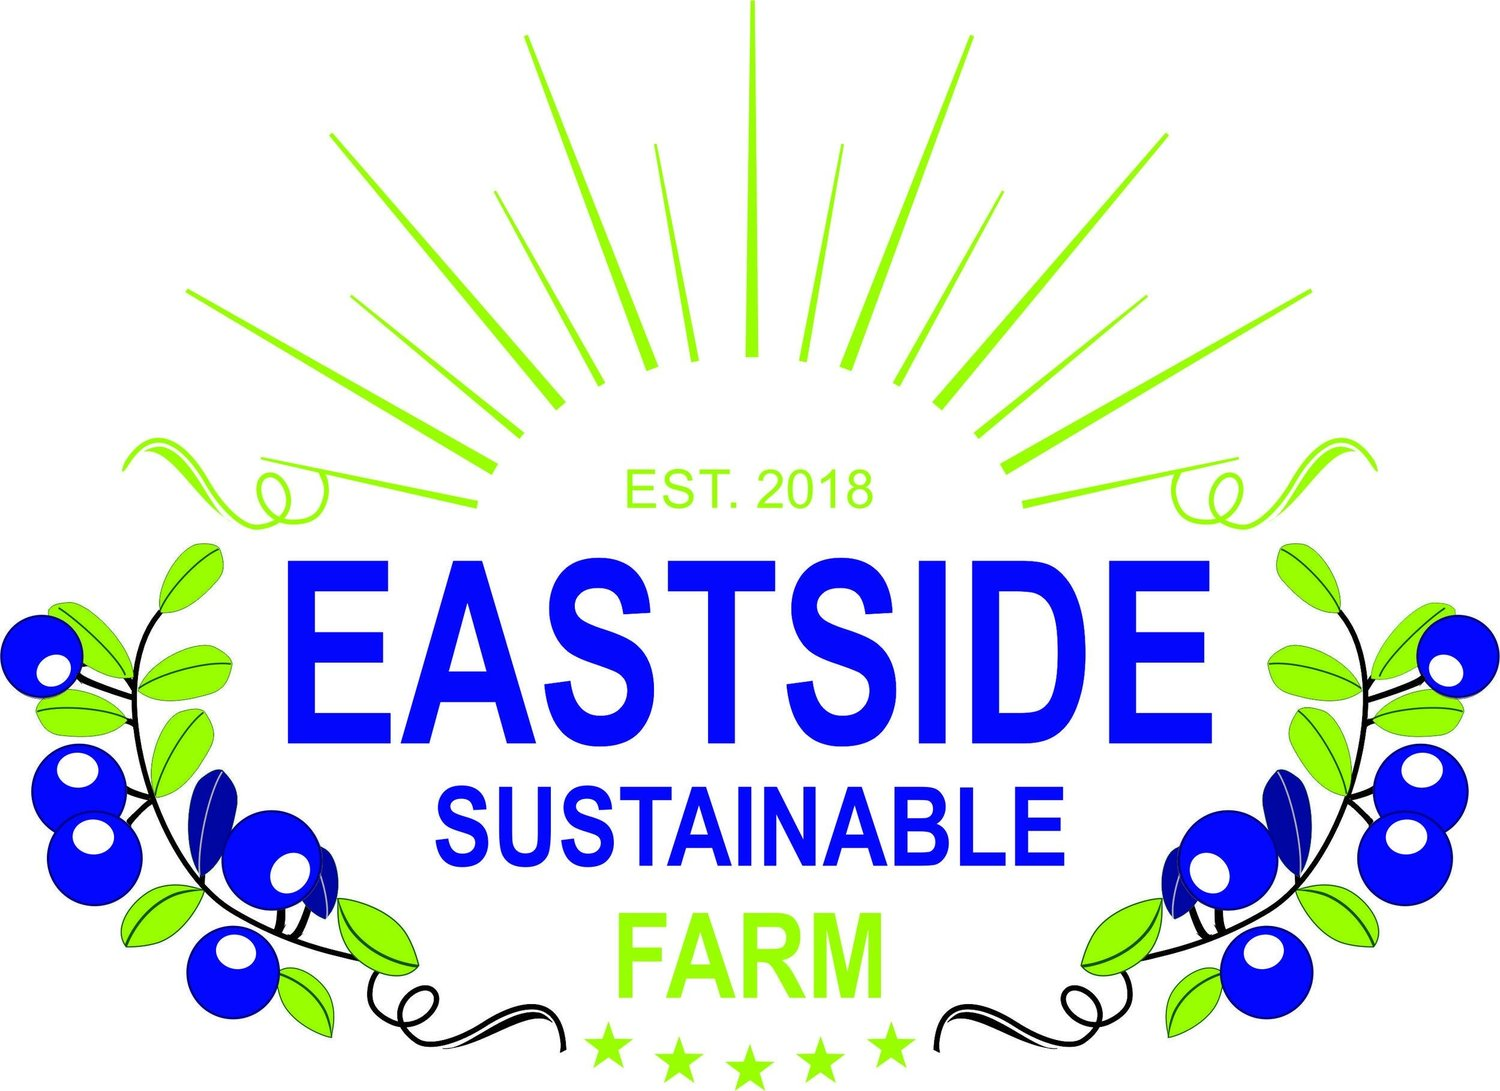 Eastside Sustainable Farm